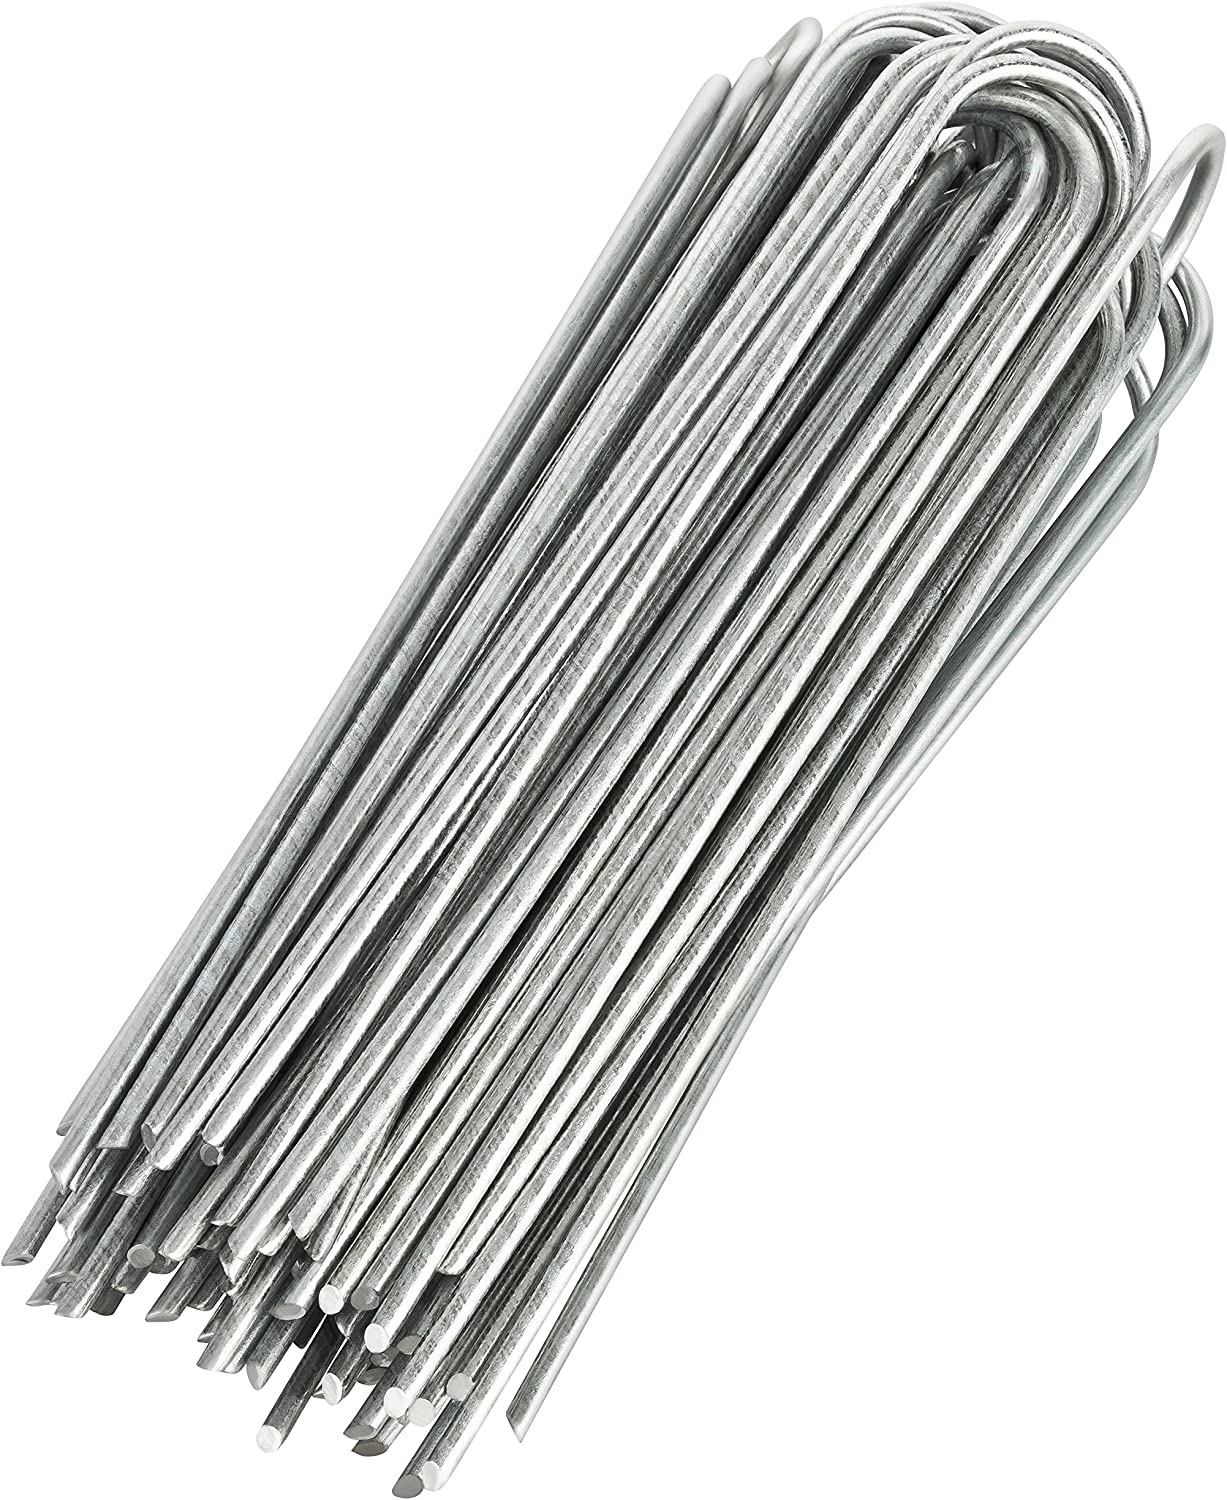 GardenMate 200-Pack Anti-Rust 8'' 9 Gauge Heavy-Duty U-Shaped Garden Securing Stakes/Spikes/Pins/Pegs - Hot Dipped Galvanized Sod Staples for Anchoring Landscape Fabric, Many More Applications